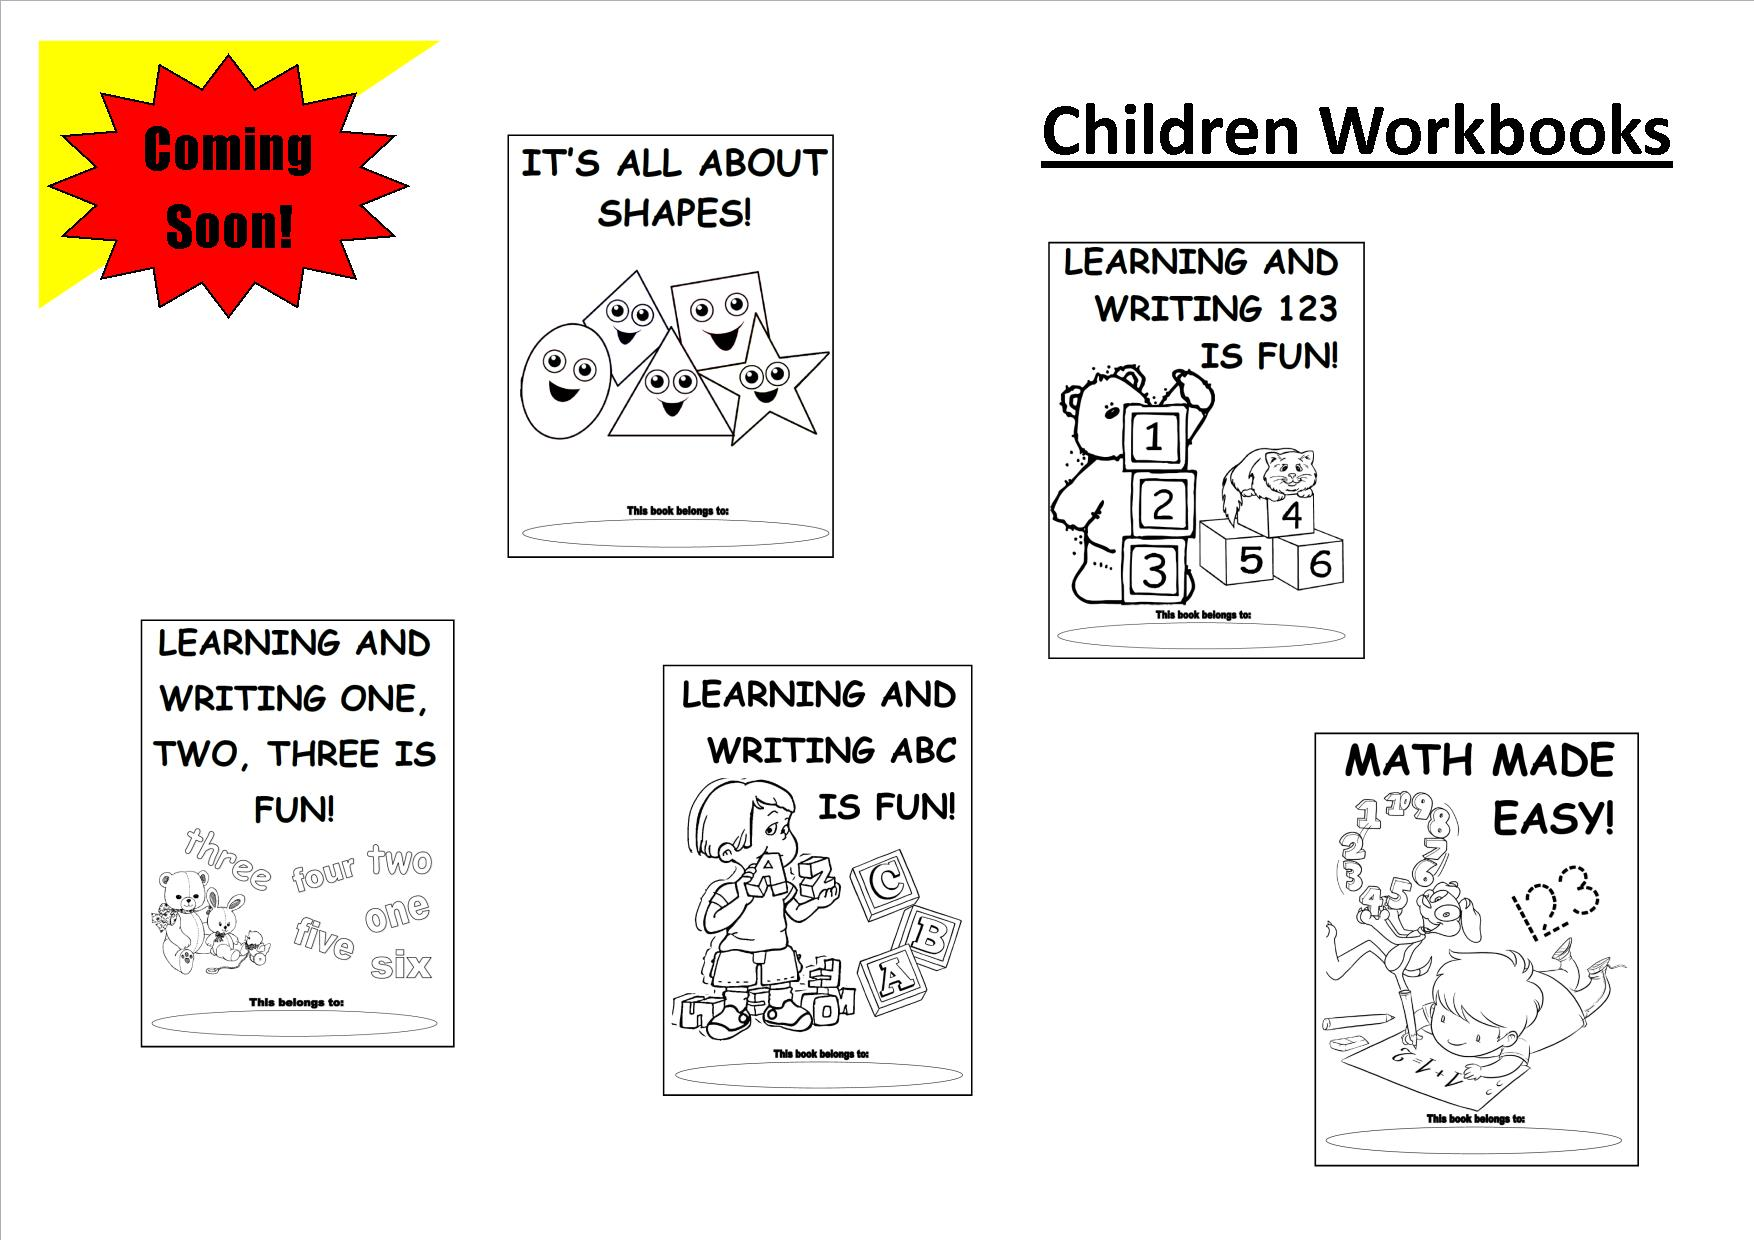 CHILDRENWORKBOOKS